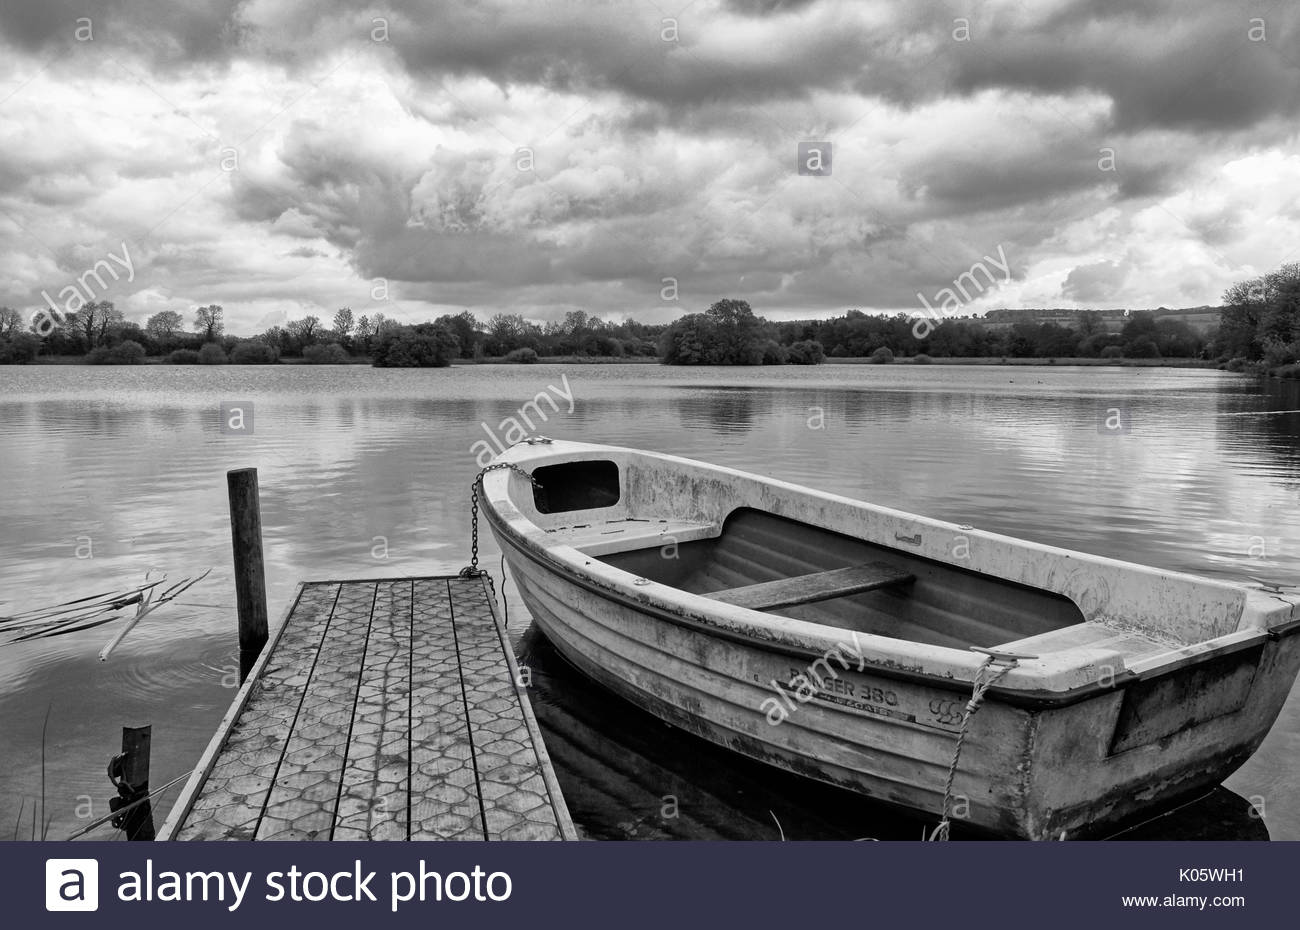 A black and white image of a rowing boat moored to a pontoon on a lake in Bourton on the water in the Cotswolds - Stock Image